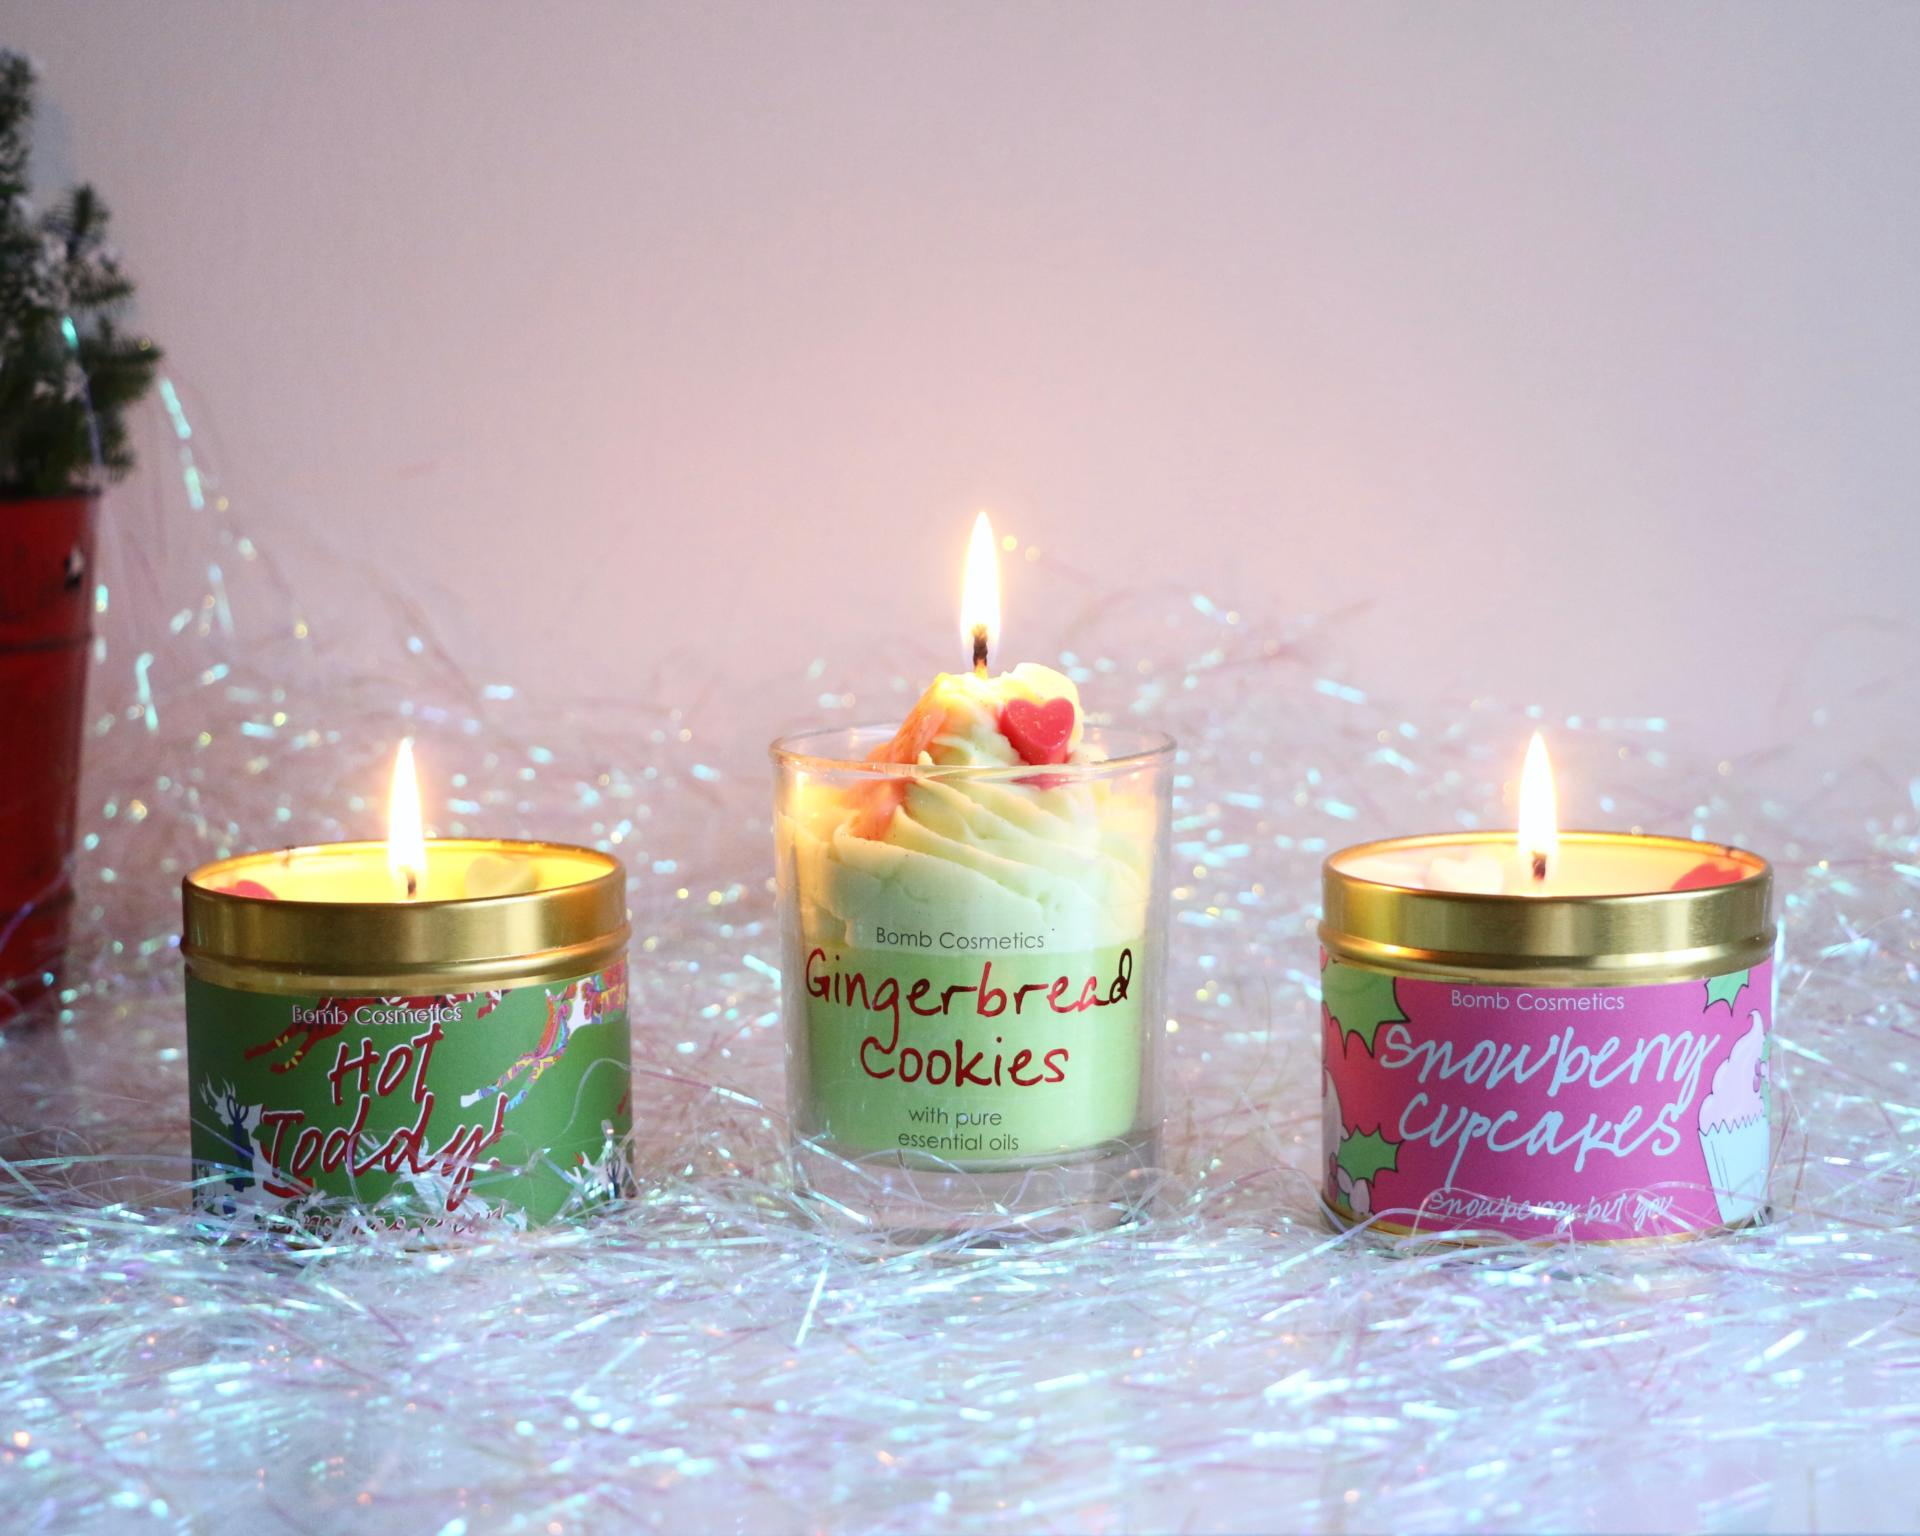 bomb-cosmetics-christmas-candles